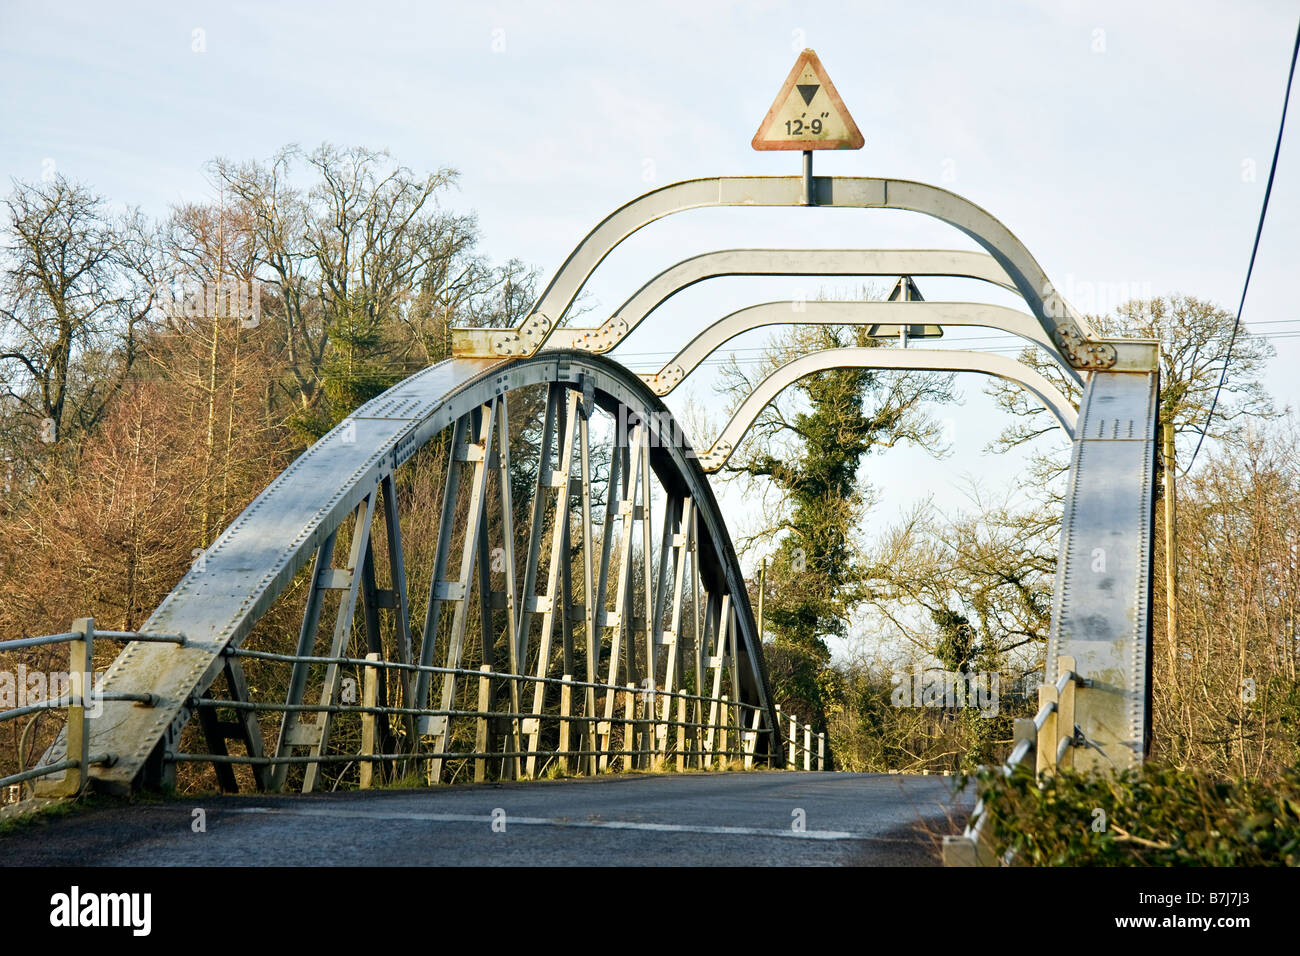 Bonds bridge over the river blackwater - Stock Image